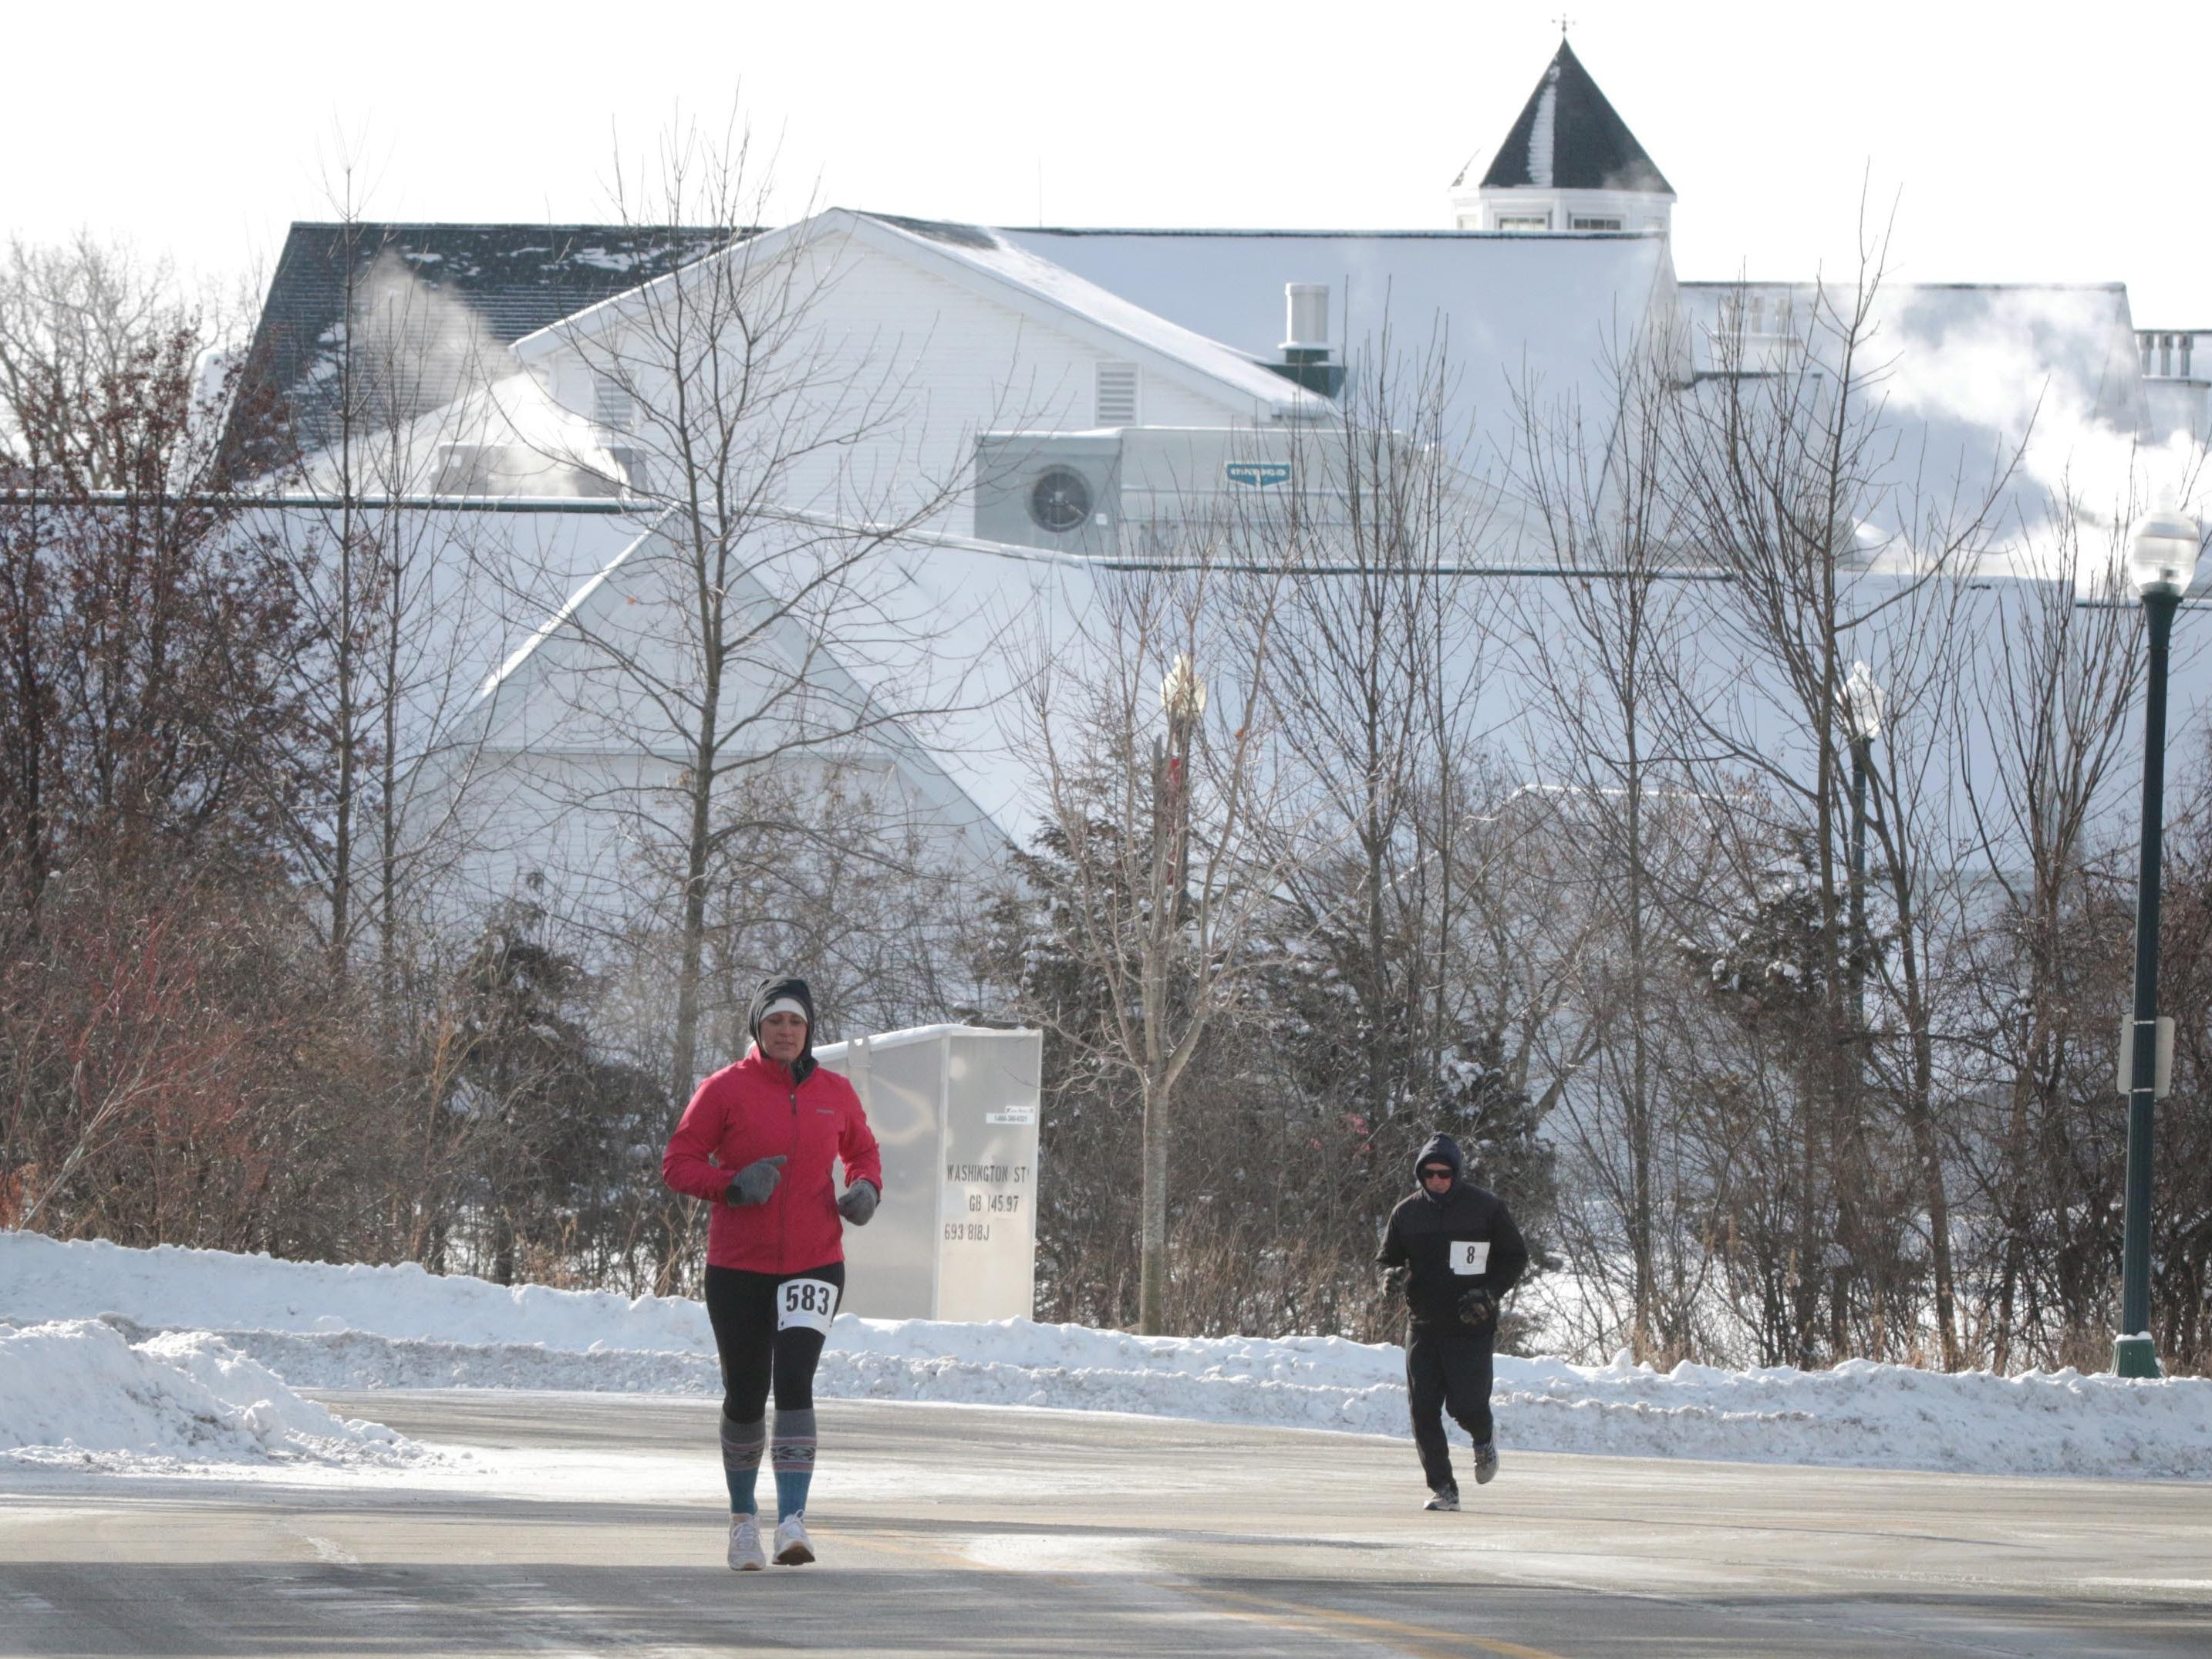 Jenna Schram (583) of Elkhart Lake and Matt O' Connor of Plymouth, Wis. run during the 2-miles Schneelauf Run, Saturday, January 26, 2019, in Elkhart Lake, Wis.